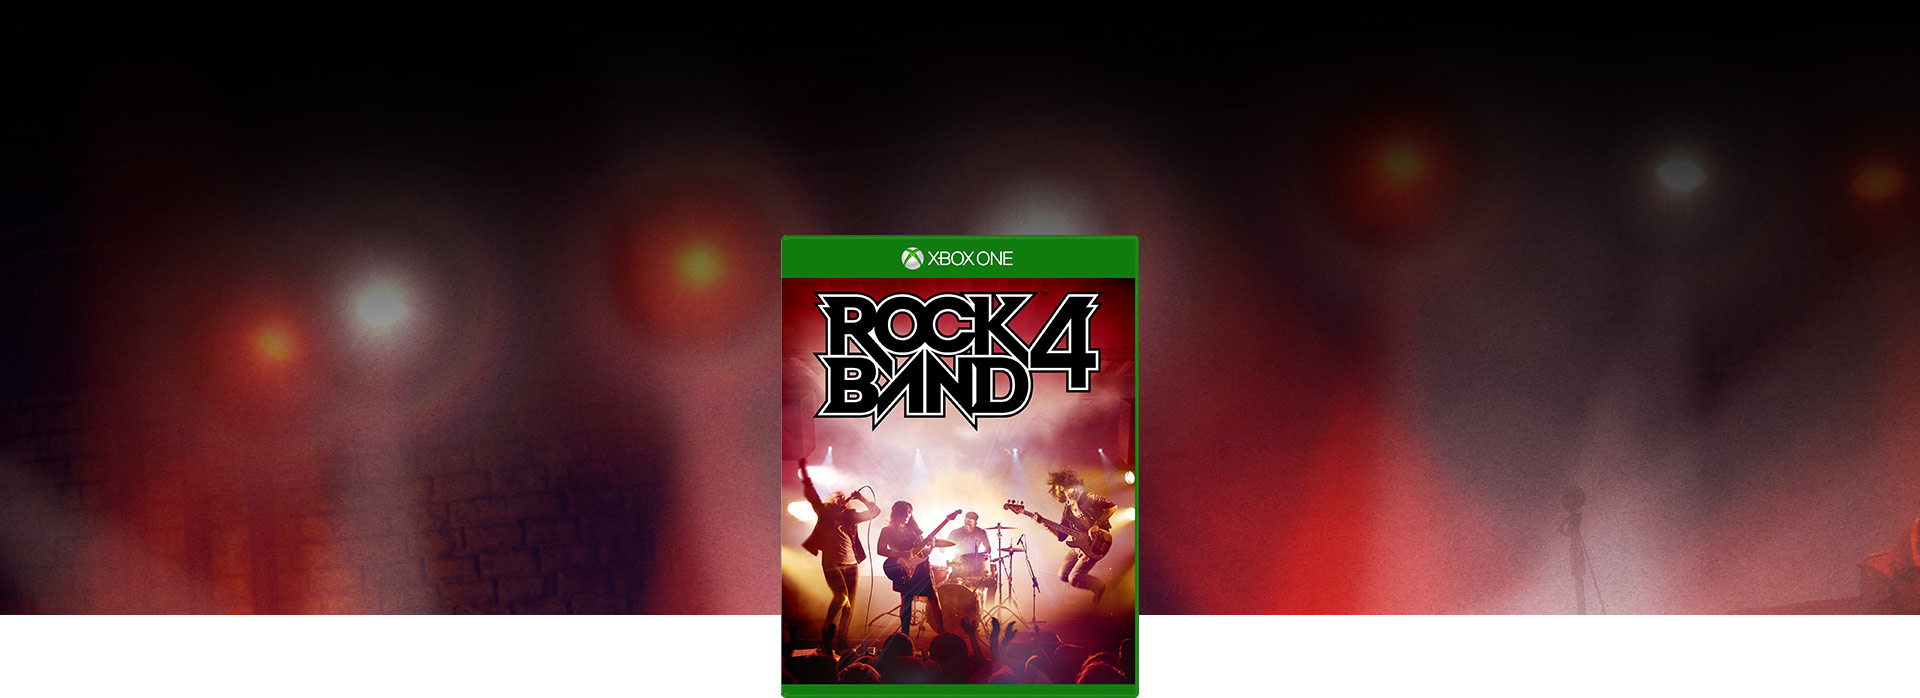 Rock Band 4 boxshot over a stage background